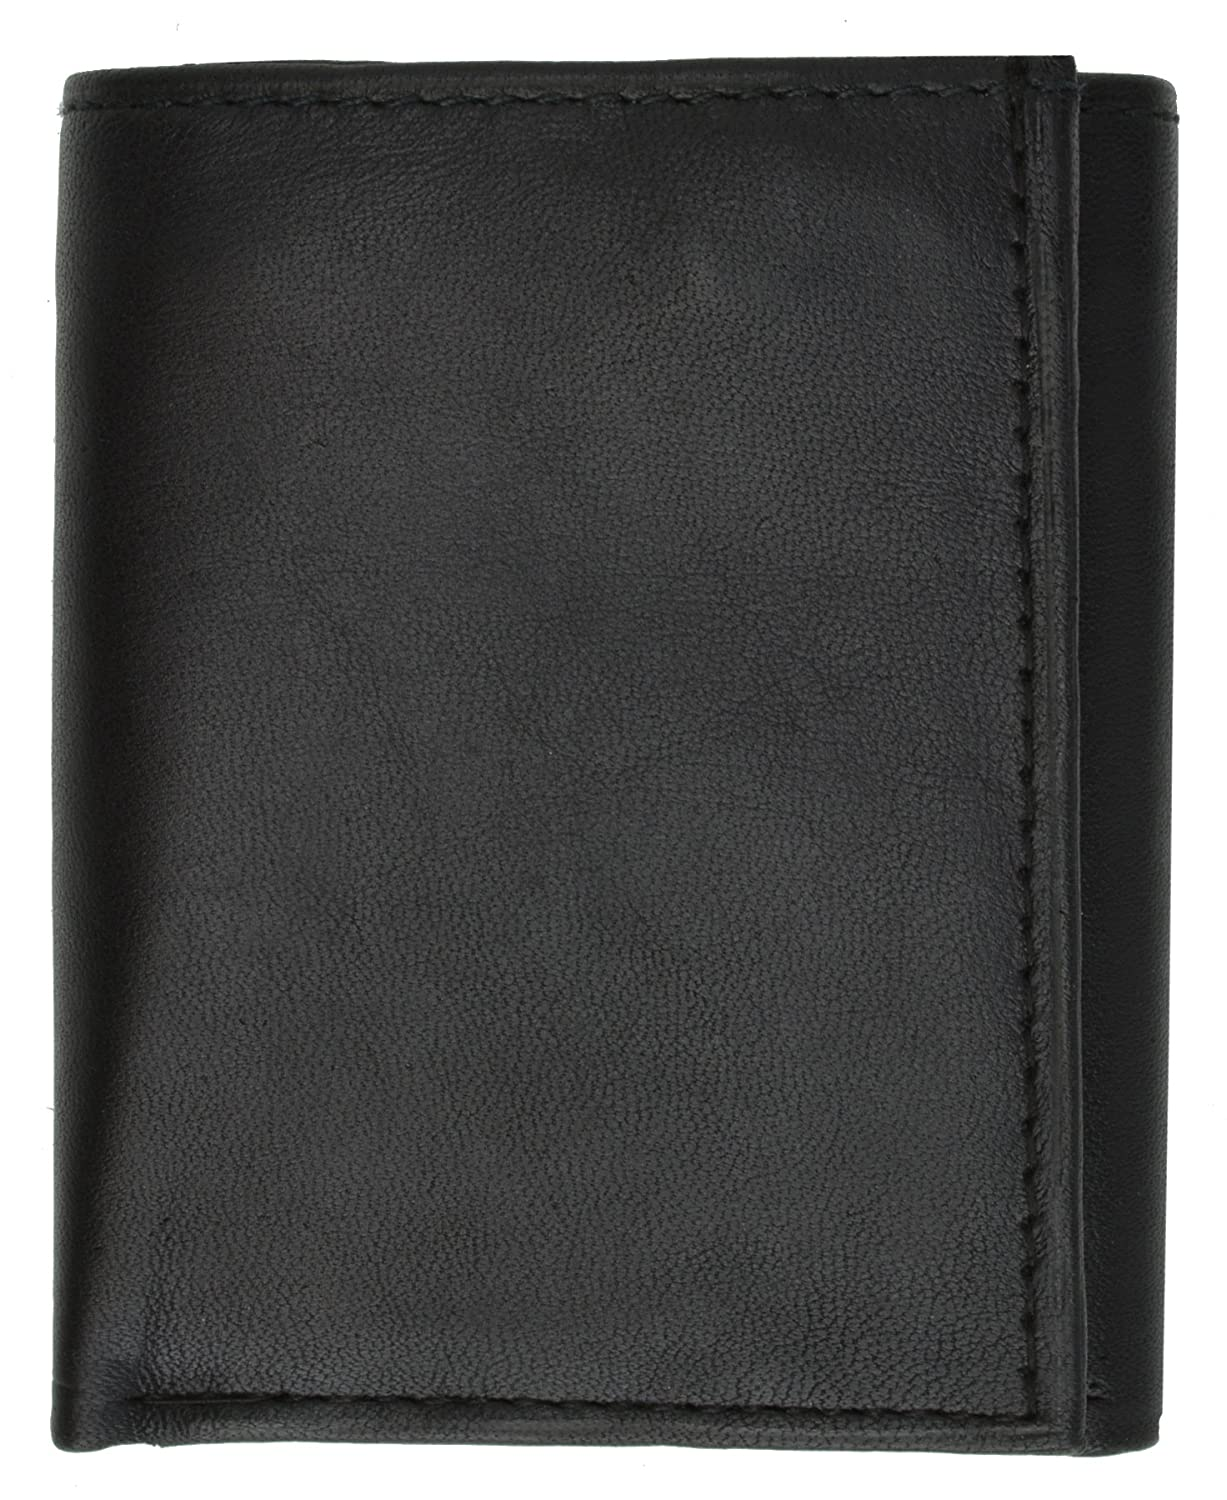 Trifold Center Flap Lambskin Leather Wallet with ID and Credit Card by Marshal